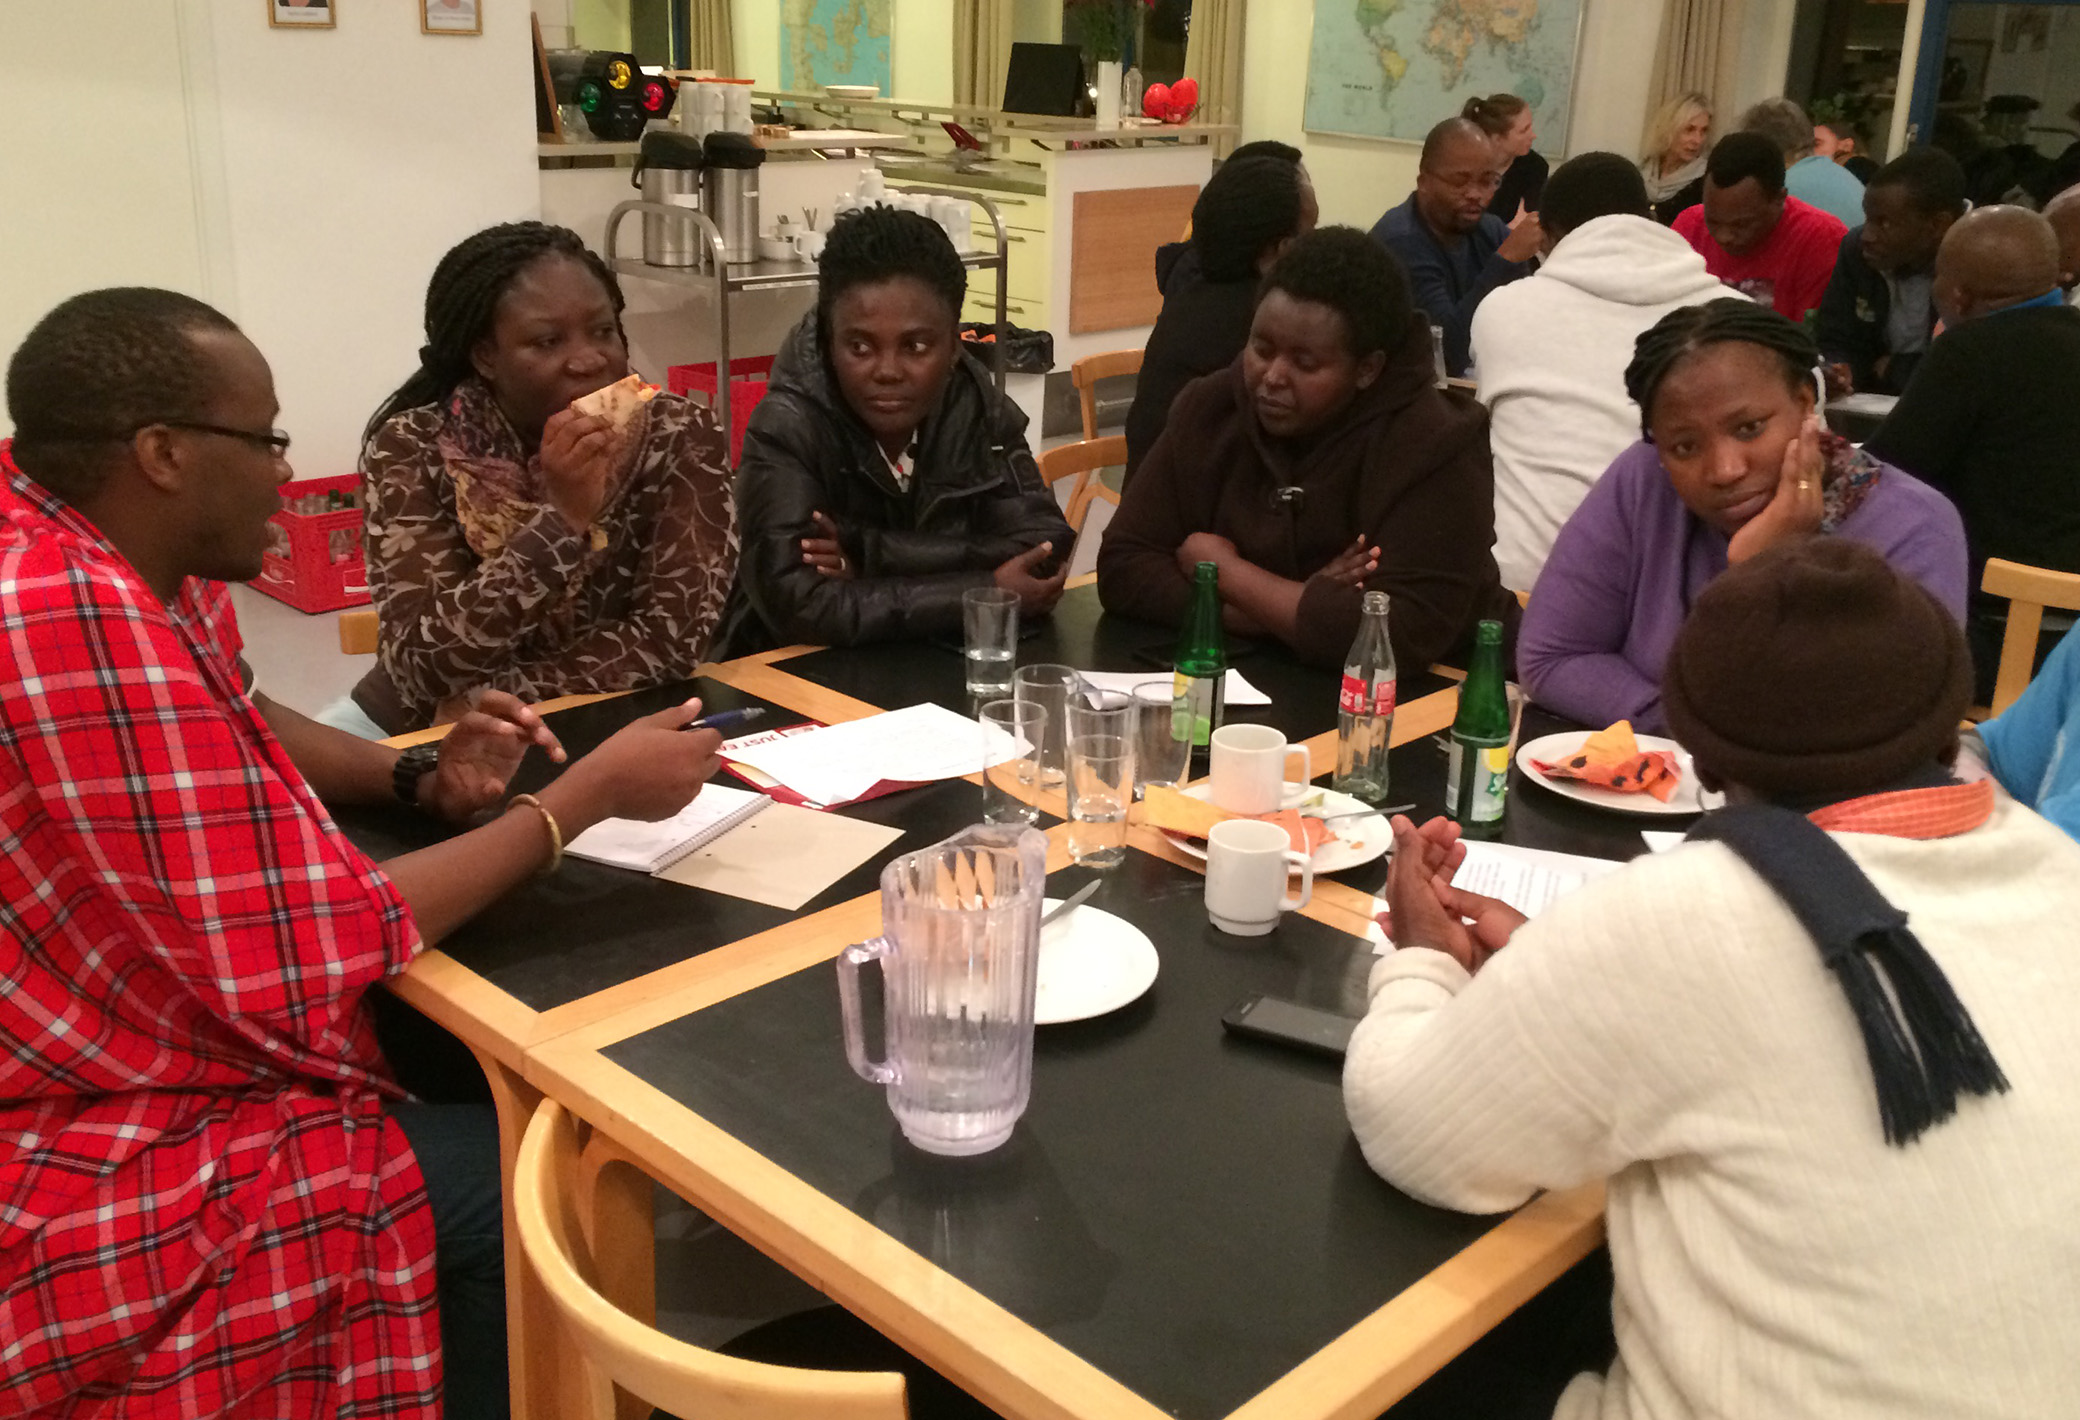 From a workshop at Danida Fellowship Centre in November 2018 with 45 African fellows, who were currently in Denmark. The workshop was part of the retrospective study of the experiences and reflections of African researchers, who has been  involved in Danida funded research capacity building 1989-2019. Photos: Hanne Kirstine Adriansen